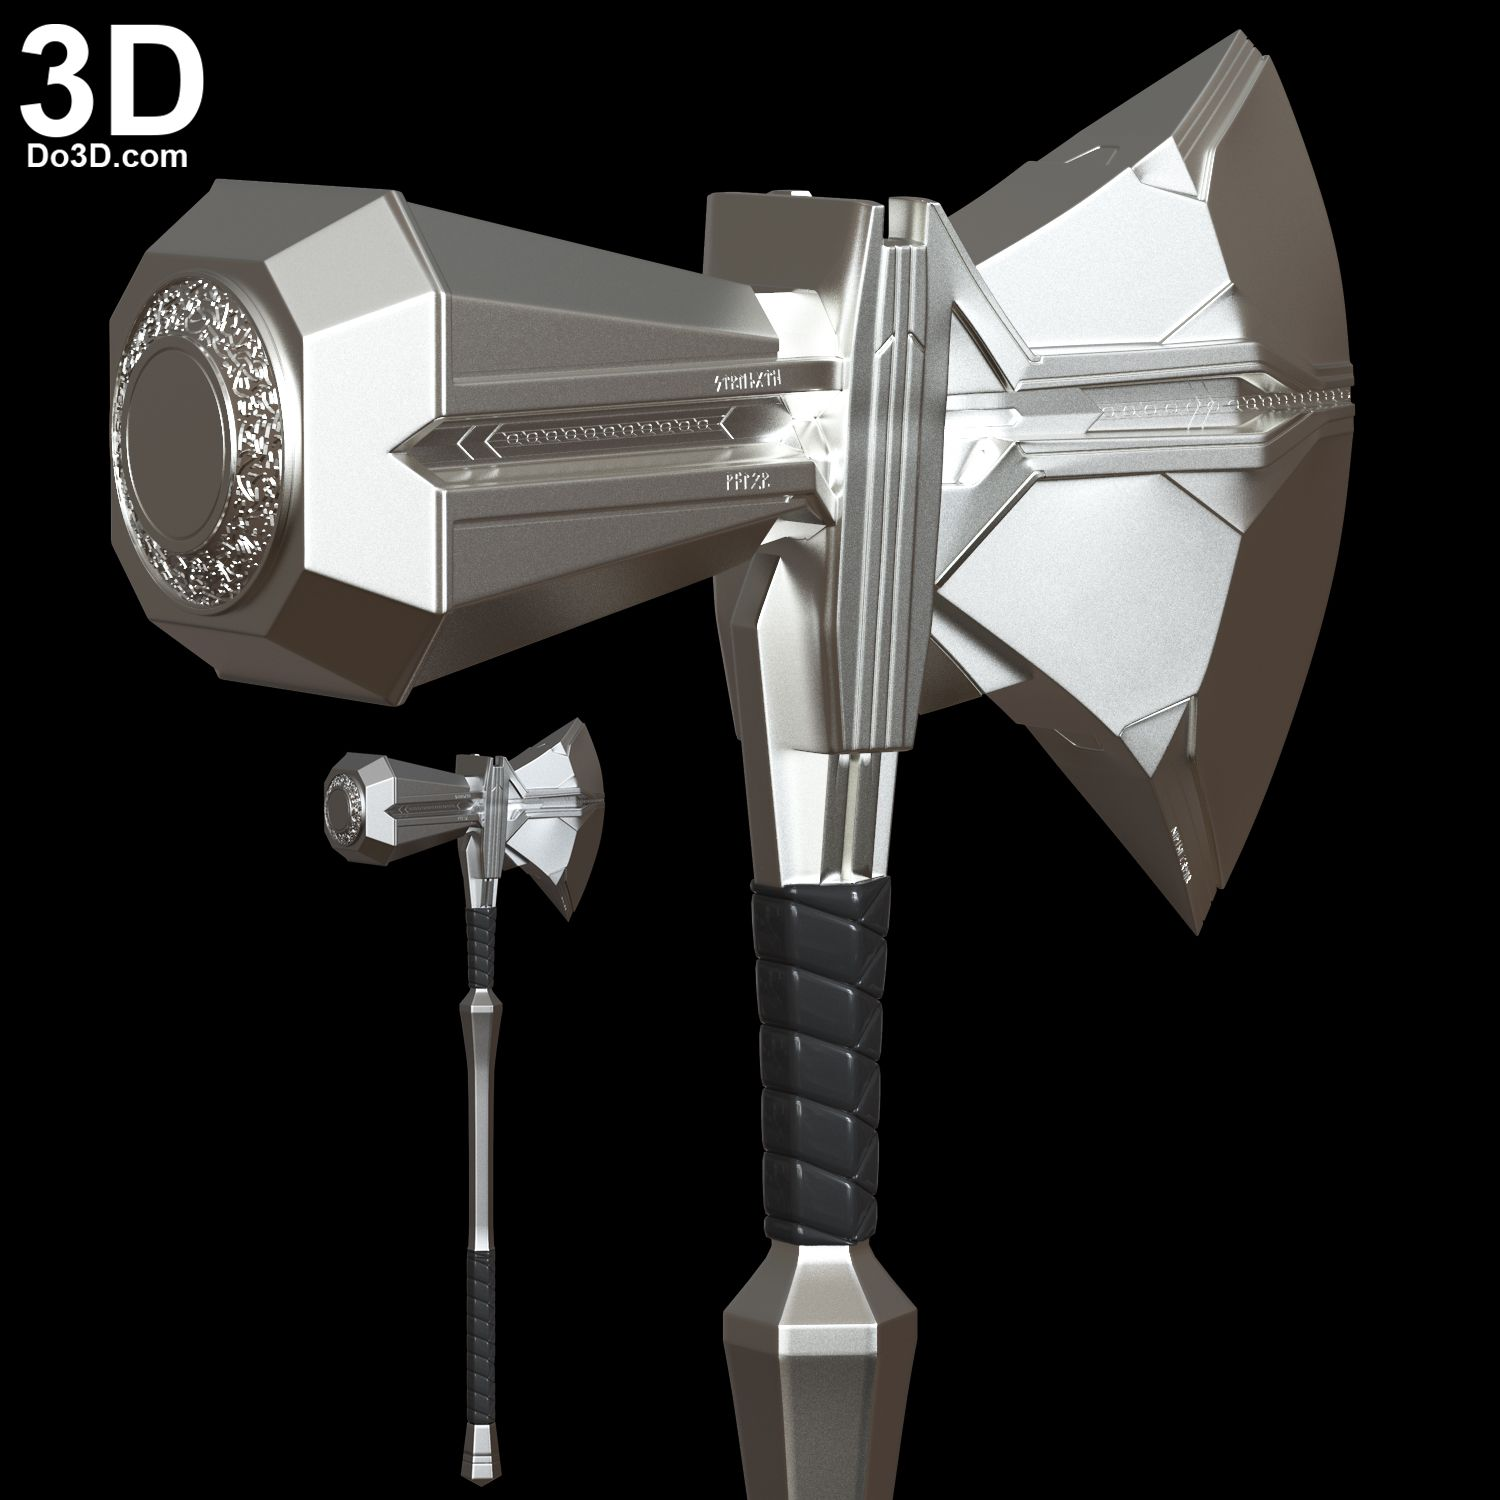 3D Printable Model: Thor Stormbreaker Axe Weapon with Curved Handle